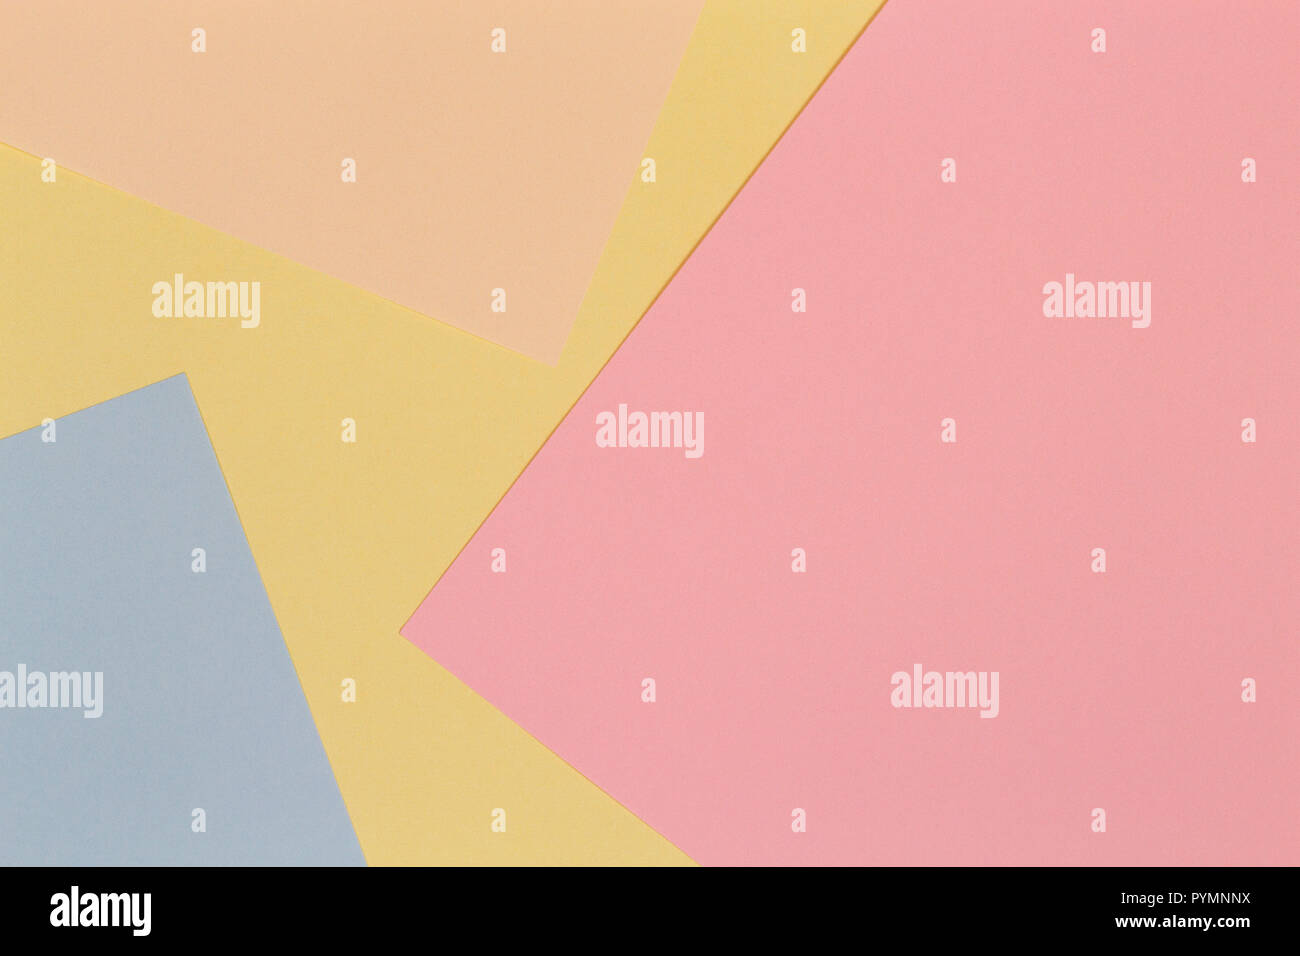 Abstract Colorful Paper Background Creative Geometry Design